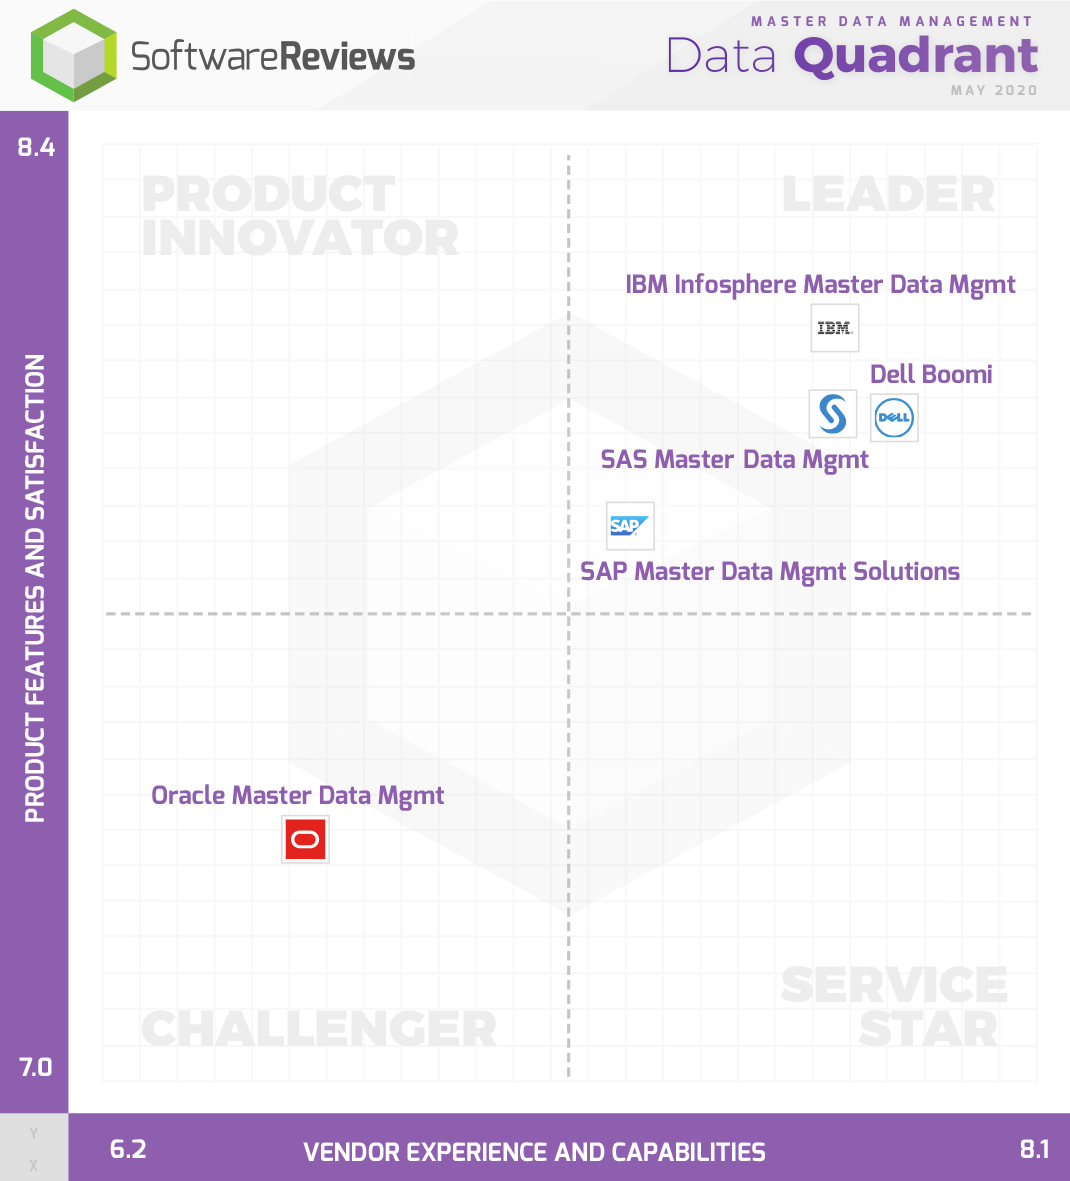 Master Data Management Data Quadrant